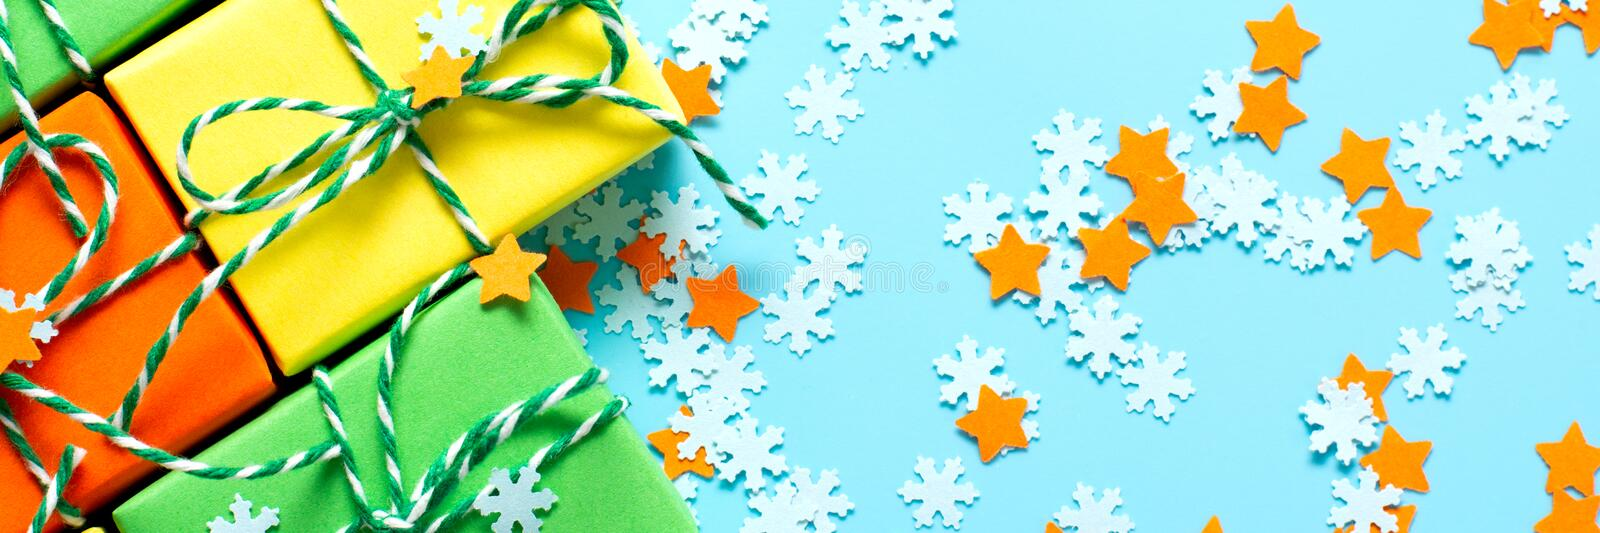 Colored gifts symbol Christmas stock photo